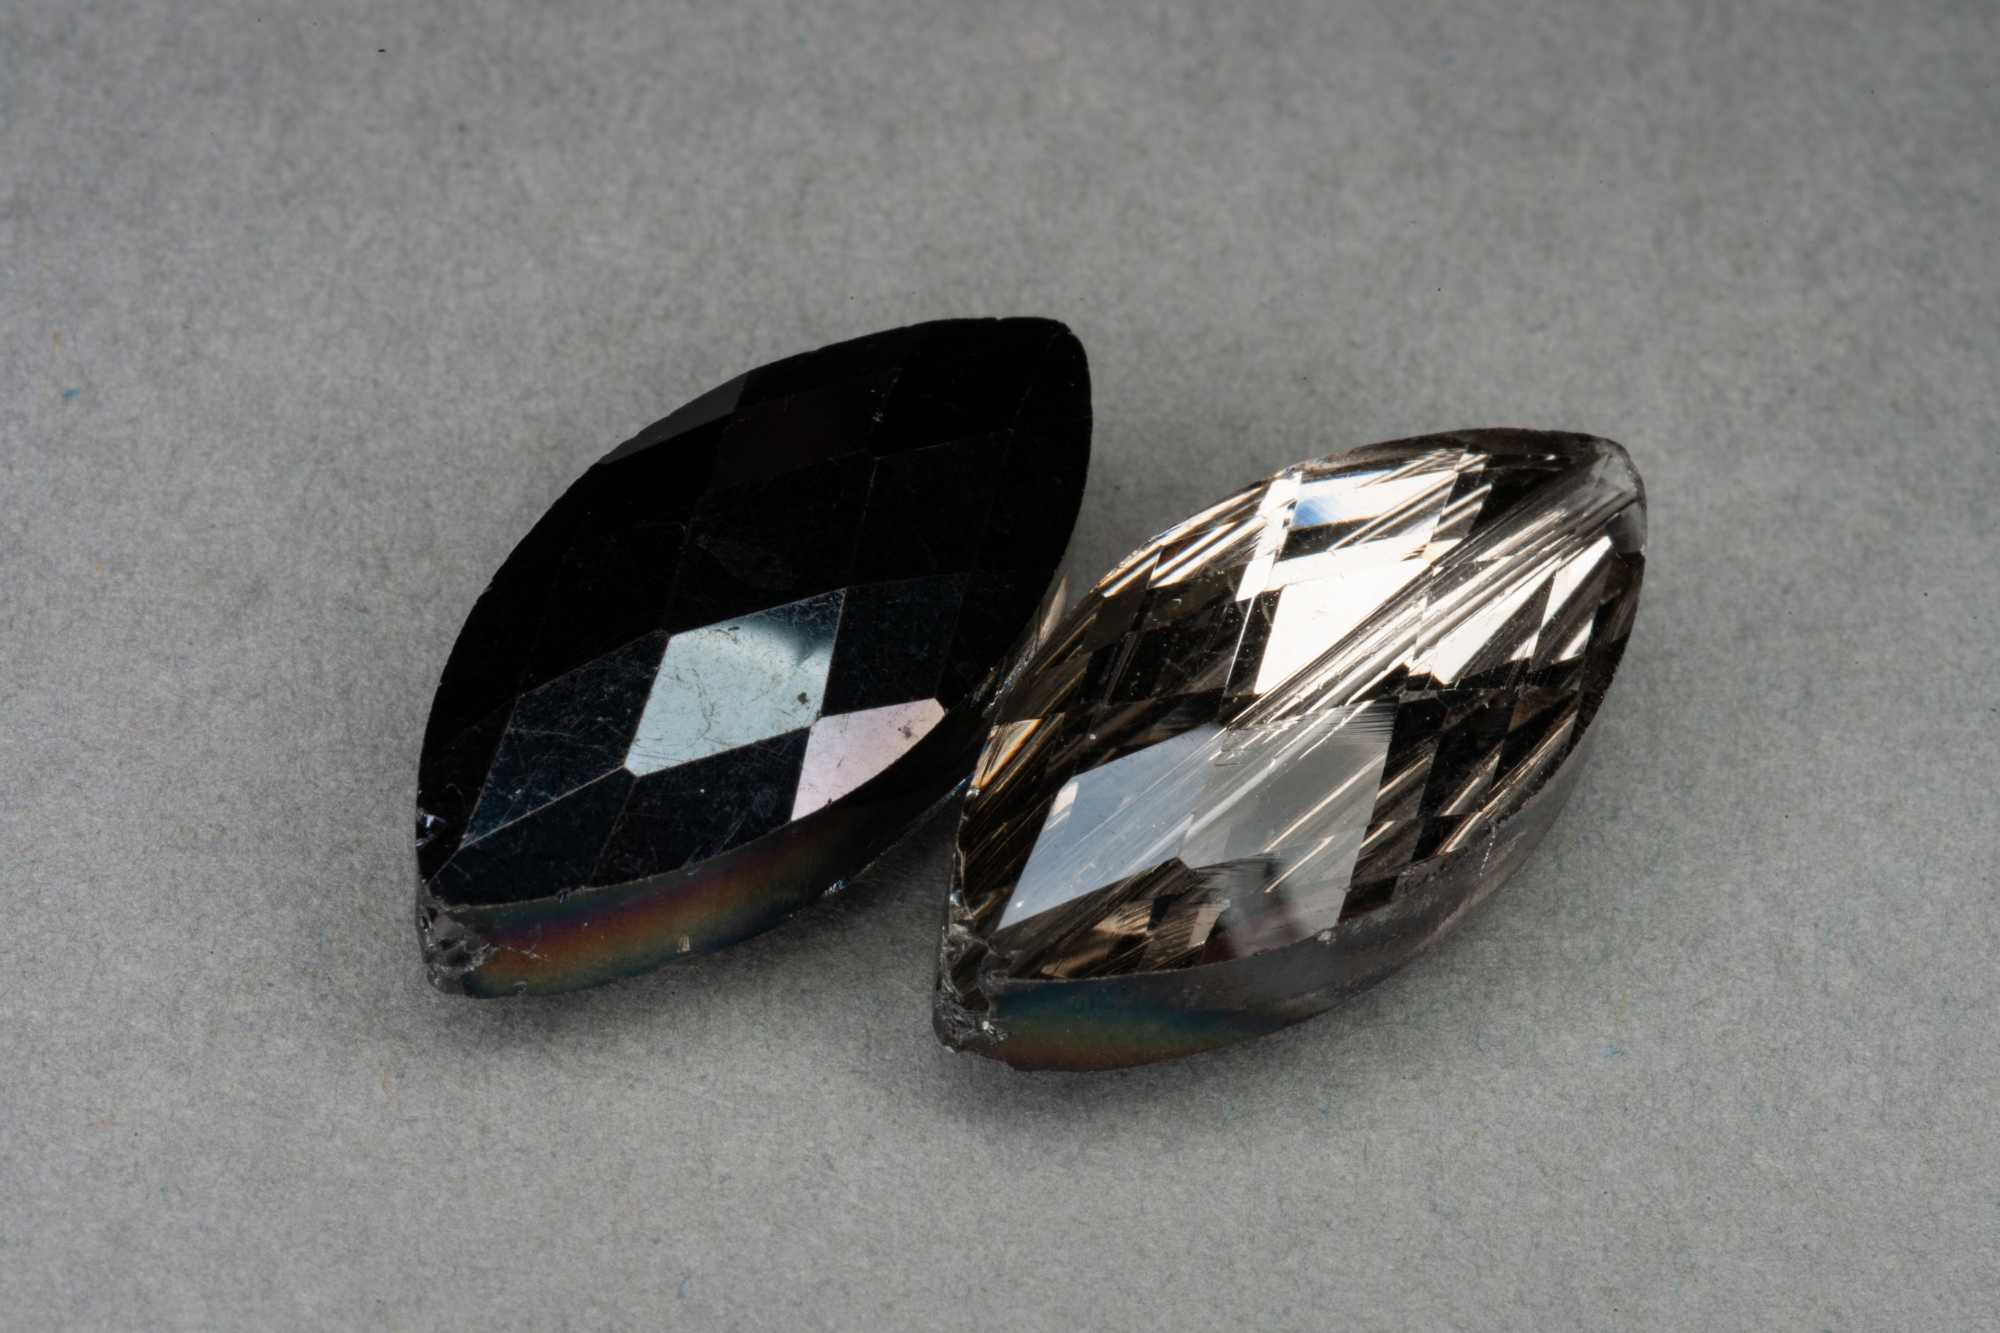 Metallic Black/Silver Lens Shape Faceted Glass Bead 25x12x7mm